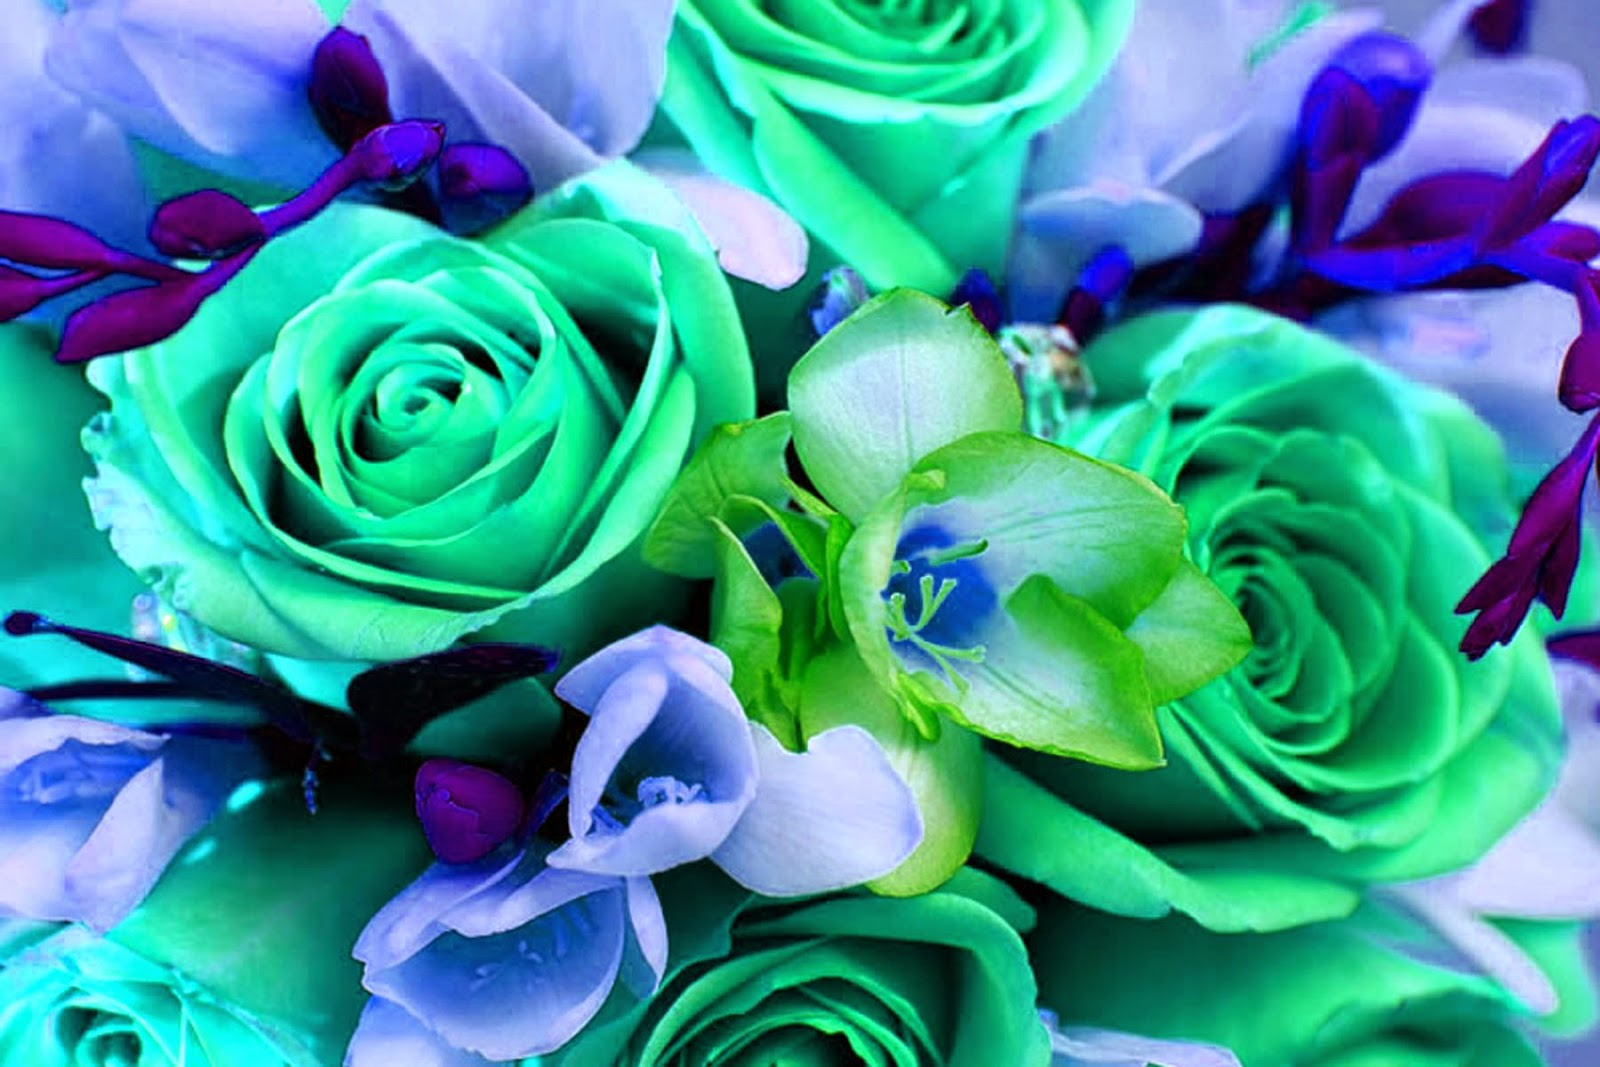 Doodlecraft colorful bouquet of flowers wallpaper background for Pics of colourful roses